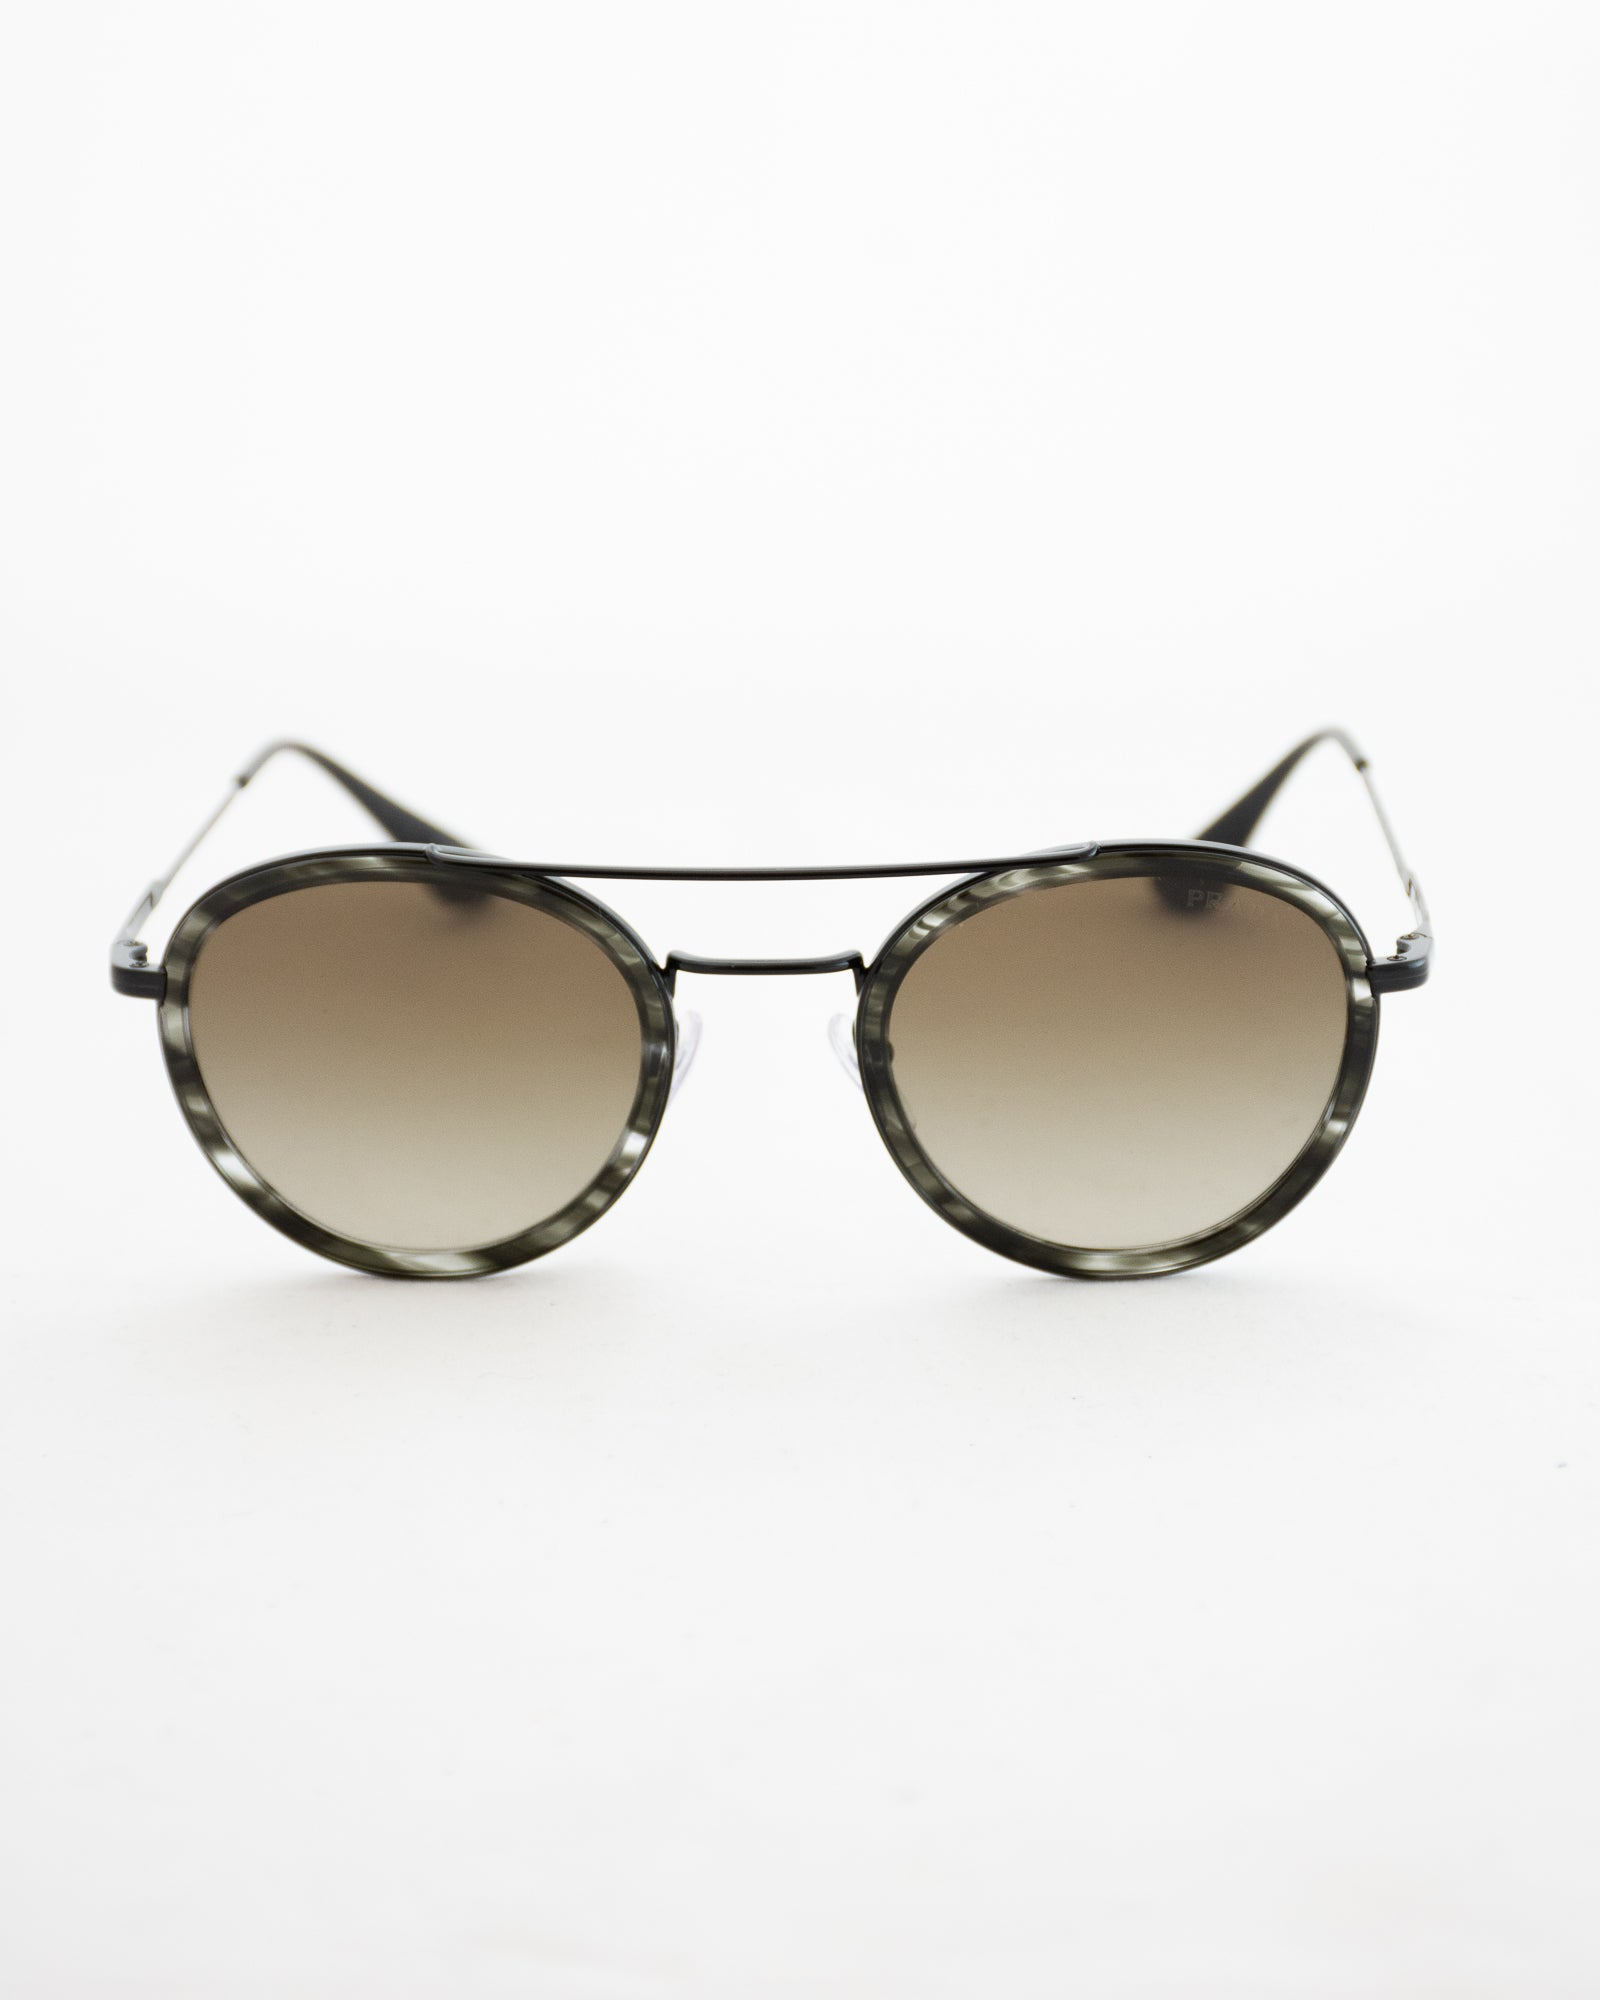 PRADA Stripped Sunglasses